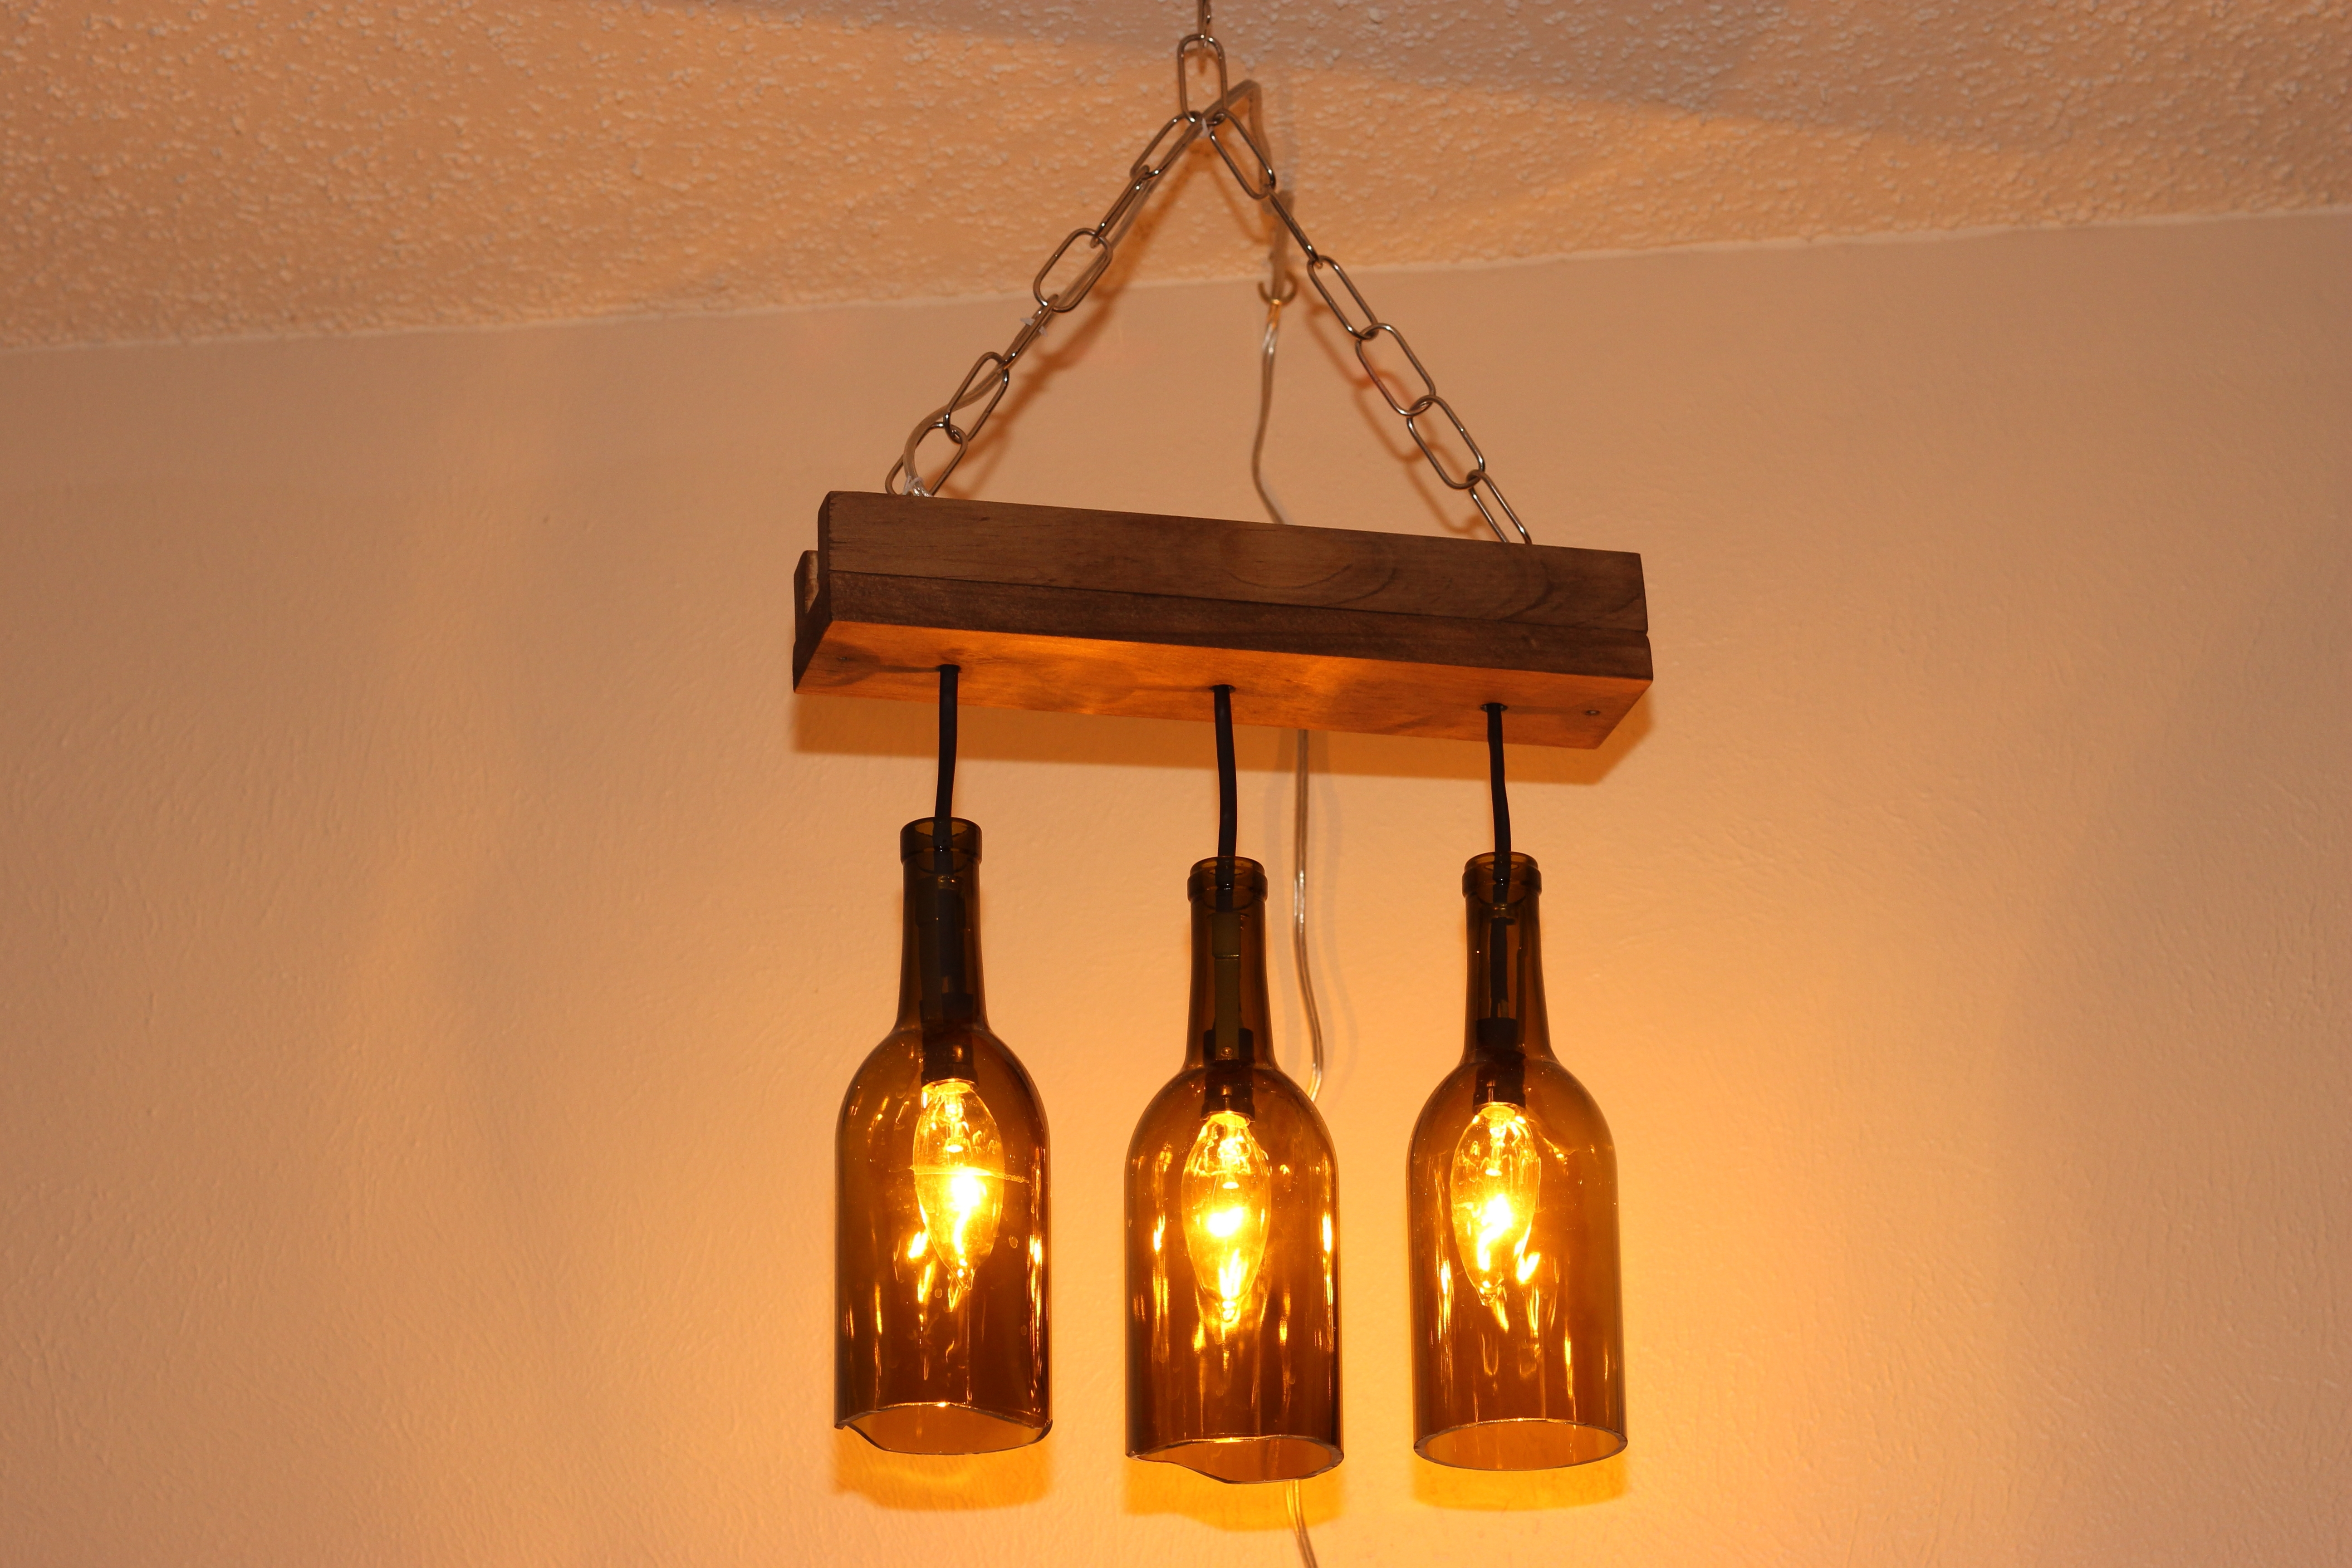 Making Outdoor Hanging Lights From Wine Bottles With Regard To Latest Wine Bottle (View 5 of 20)